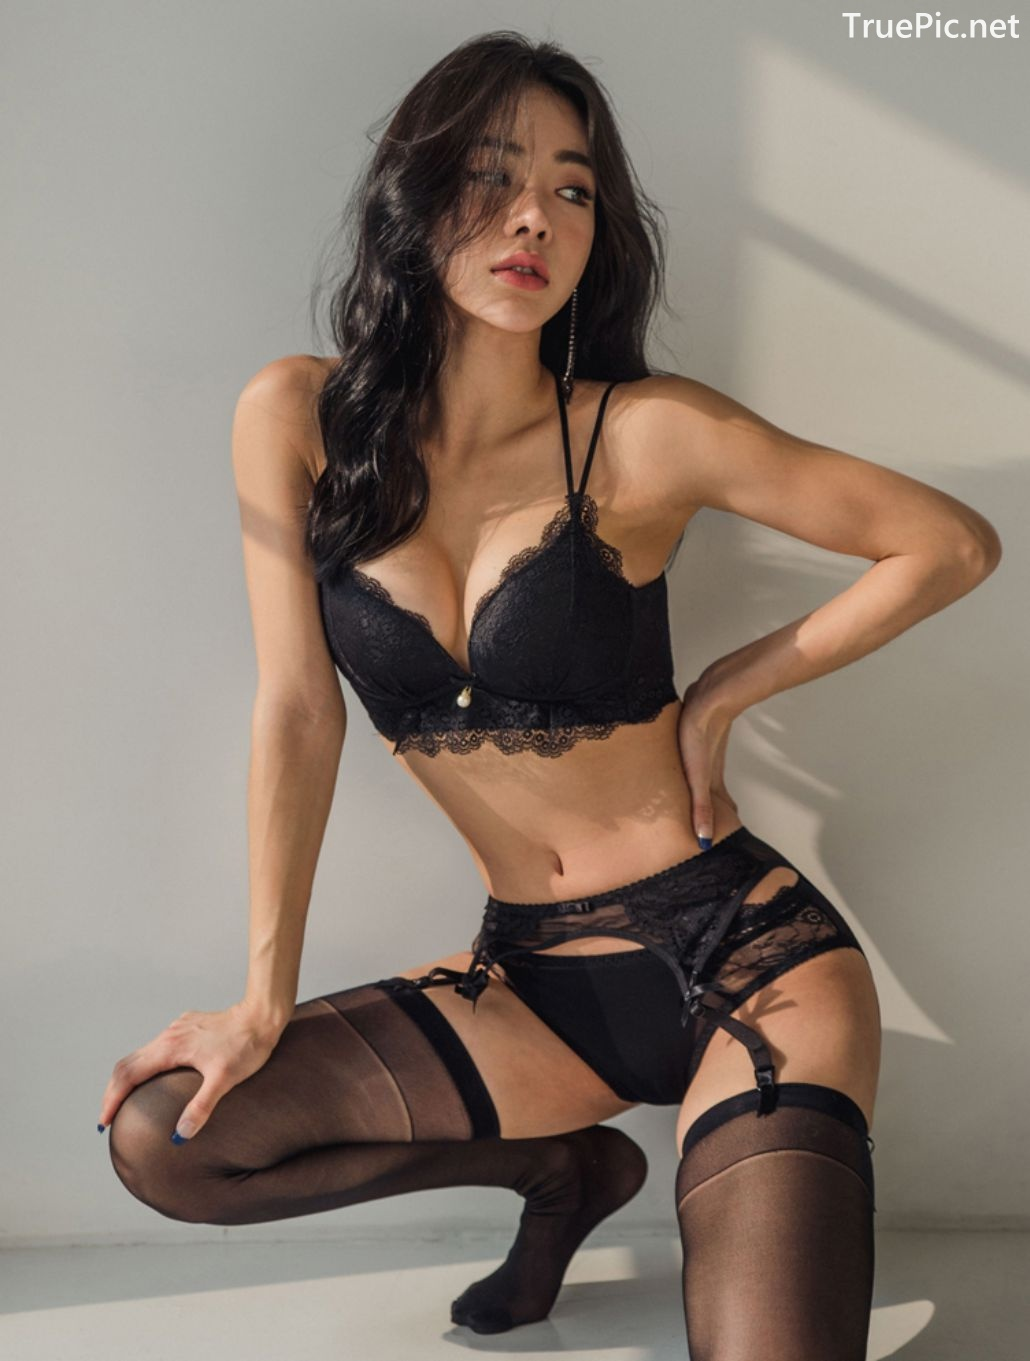 Image-Korean-Fashion-Model-An-Seo-Rin-7-Lingerie-Set-For-A-Week-TruePic.net- Picture-2